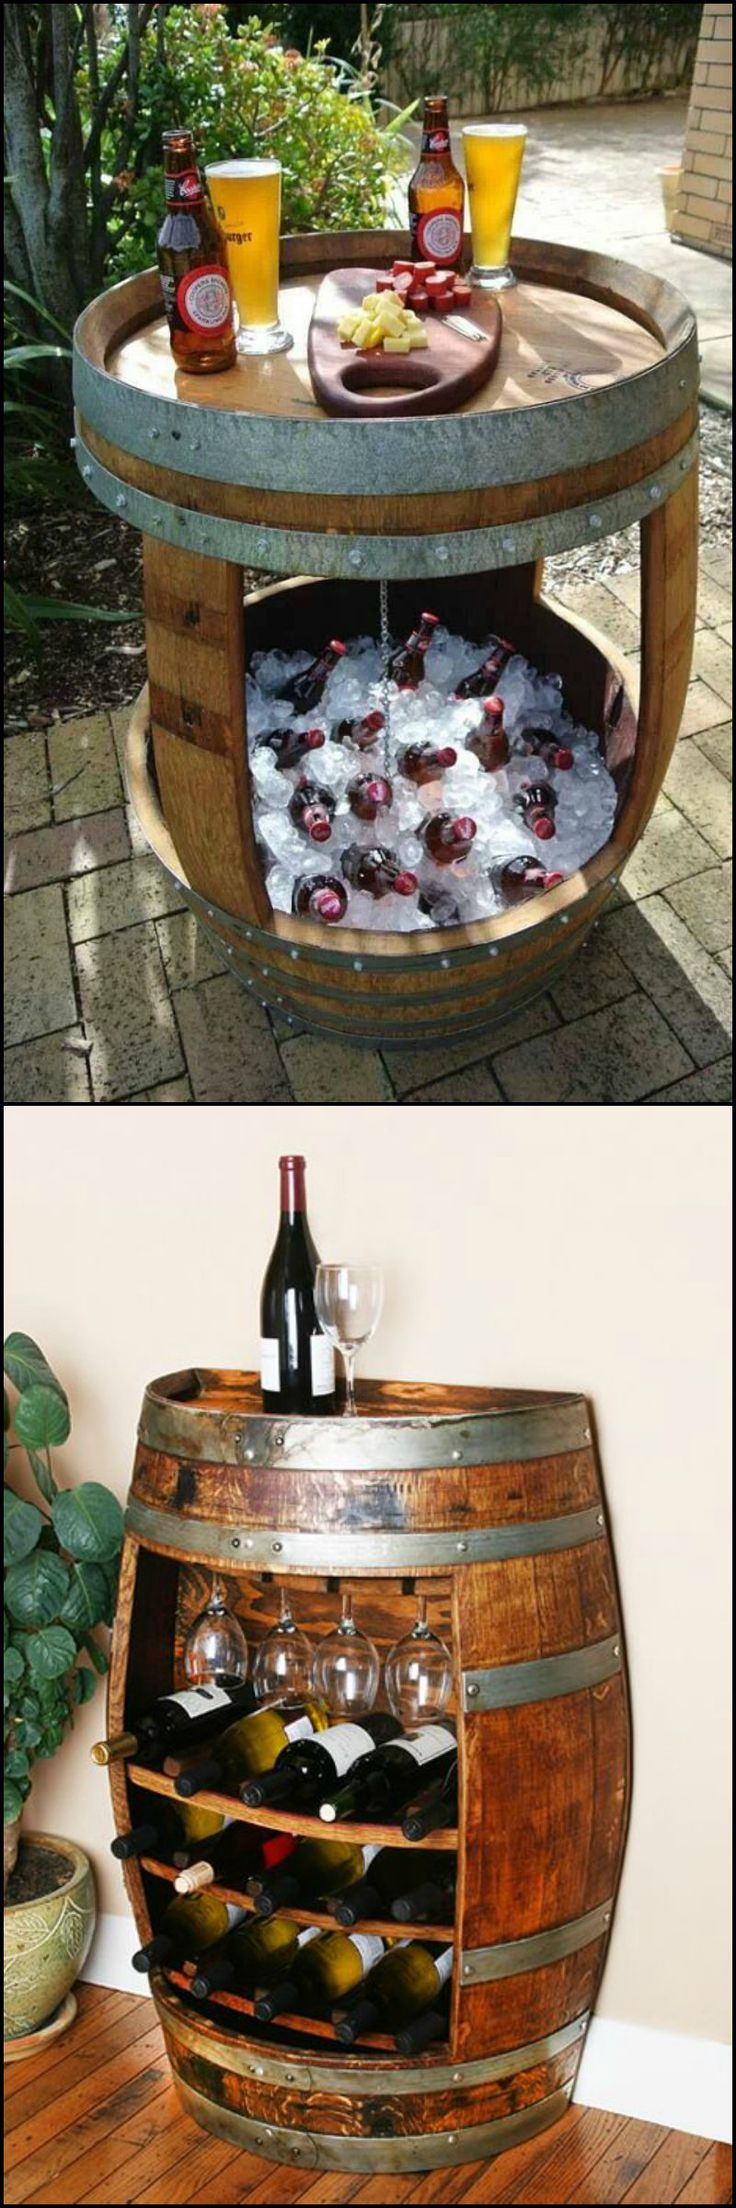 36 Awesone Recycled Wine Barrel Ideas  http://theownerbuildernetwork.co/byl6  There are many ways of re-purposing wine barrels, here are some of the best ideas that we've come across…  Which of these ideas do you like best?